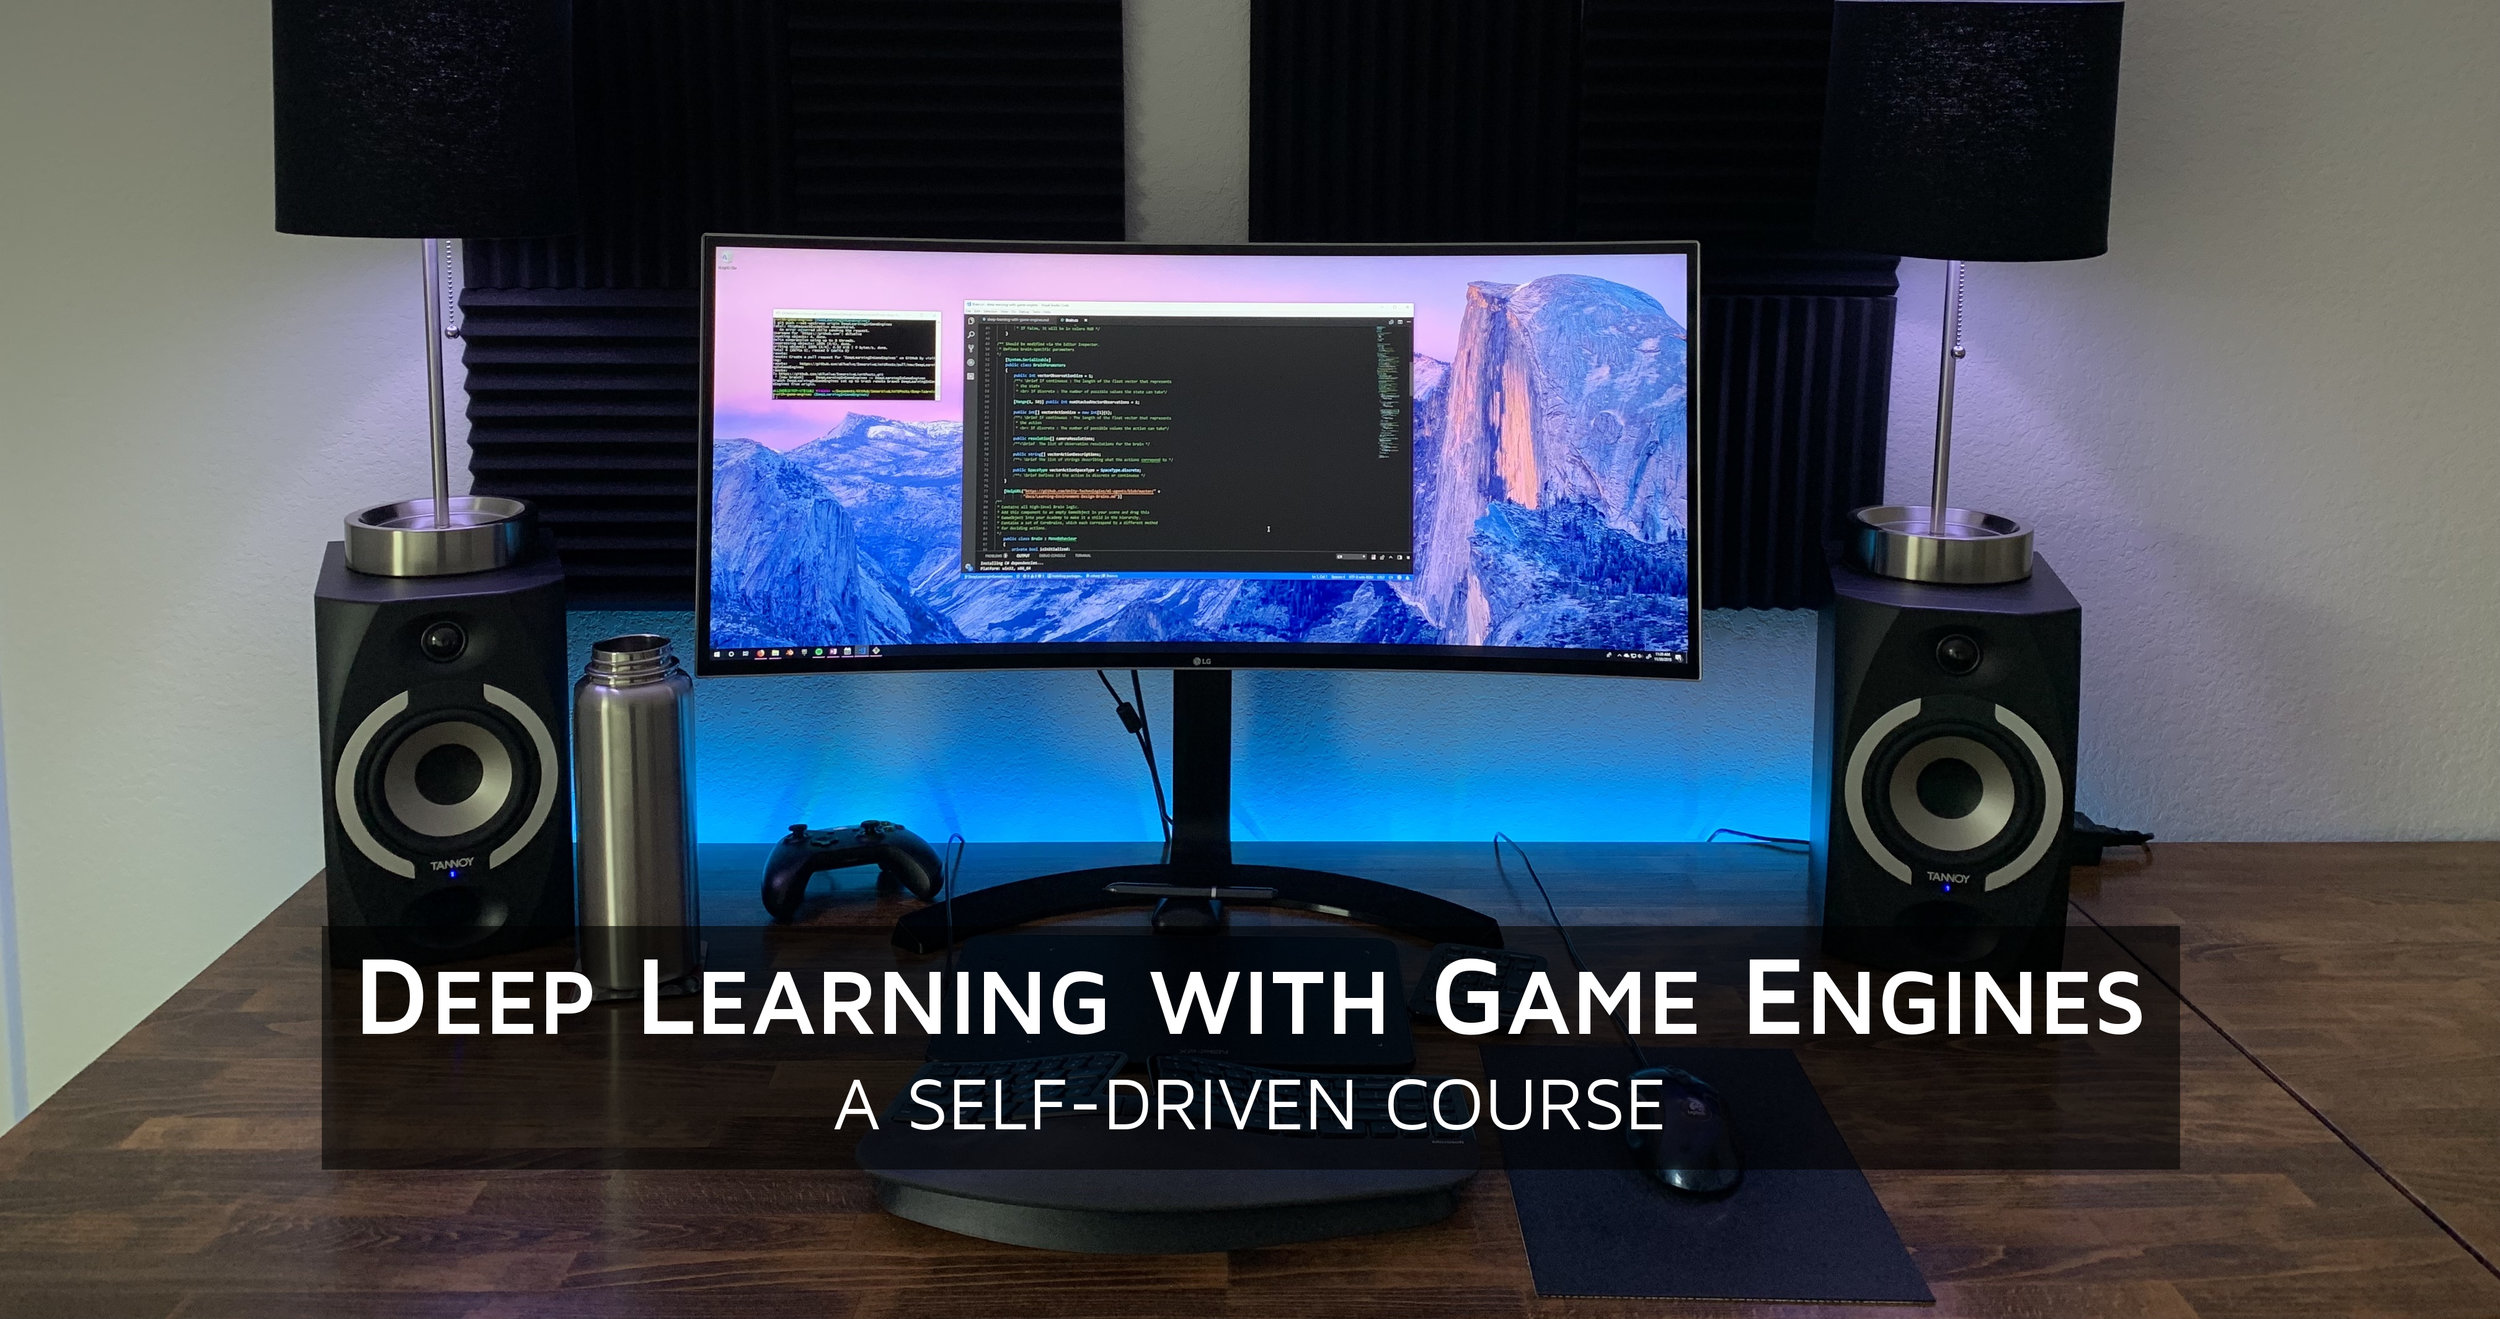 Deep Learning with Game Engines: A Self-Driven Course